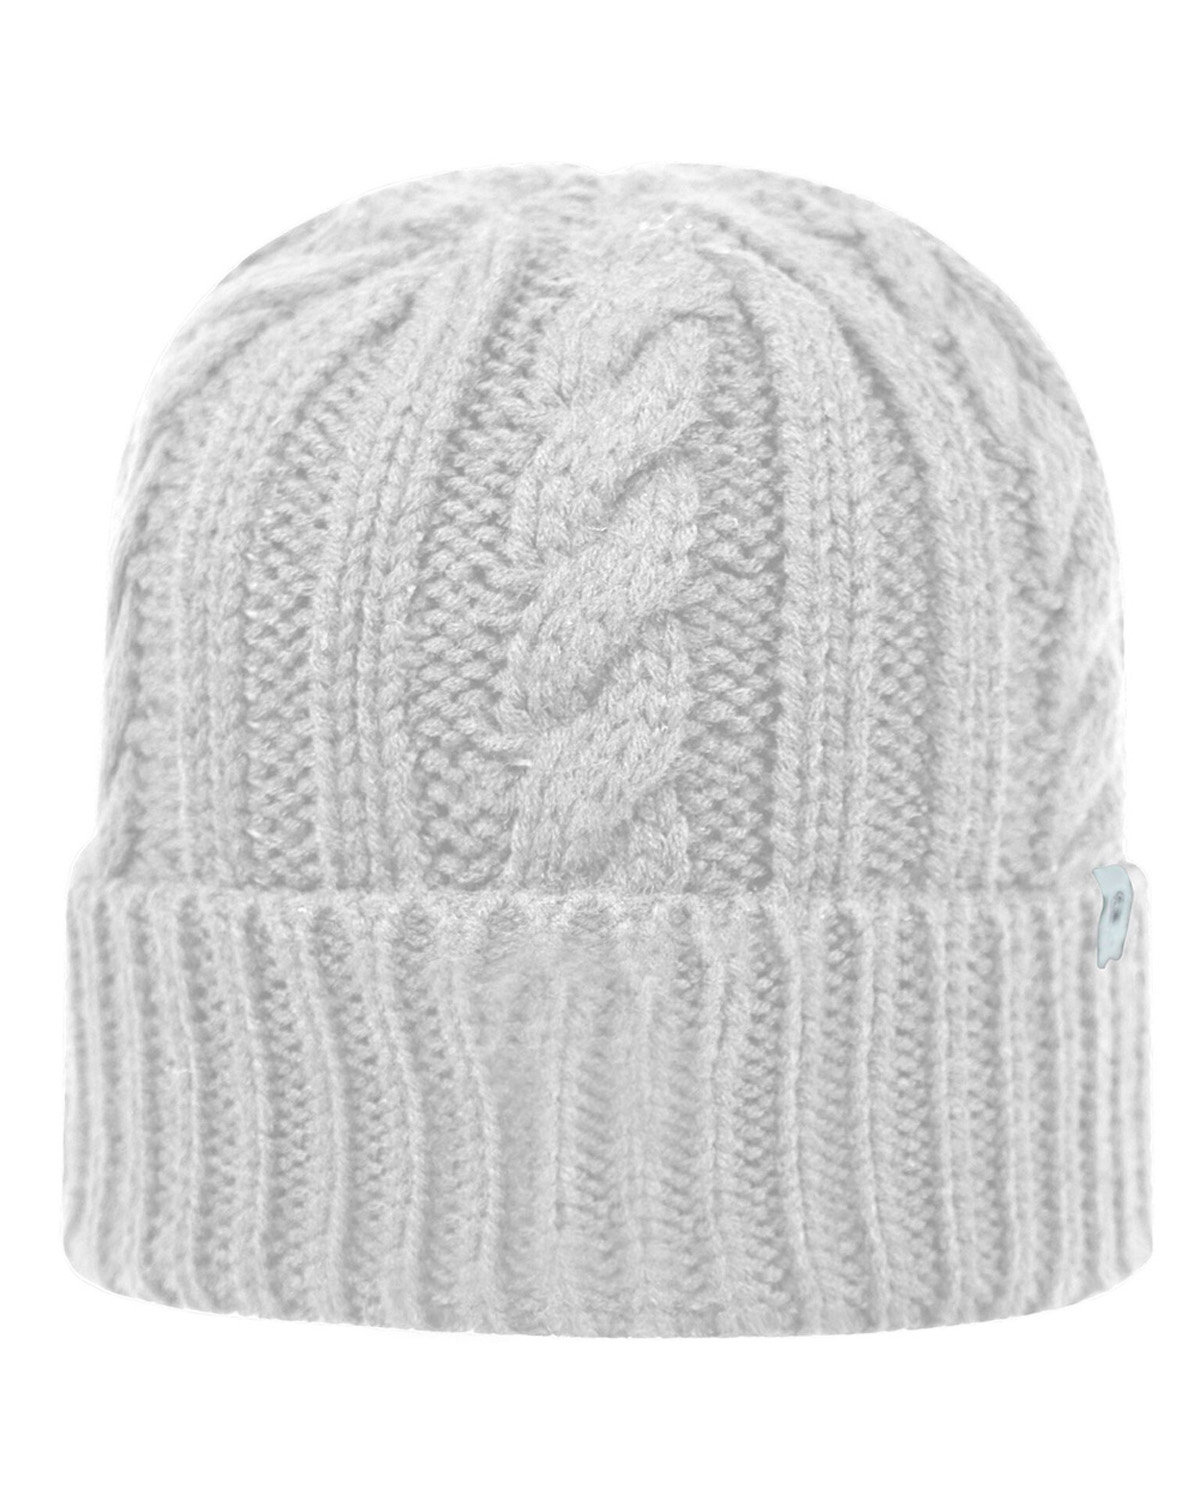 Top Of The World Adult Empire Knit Cap WHITE